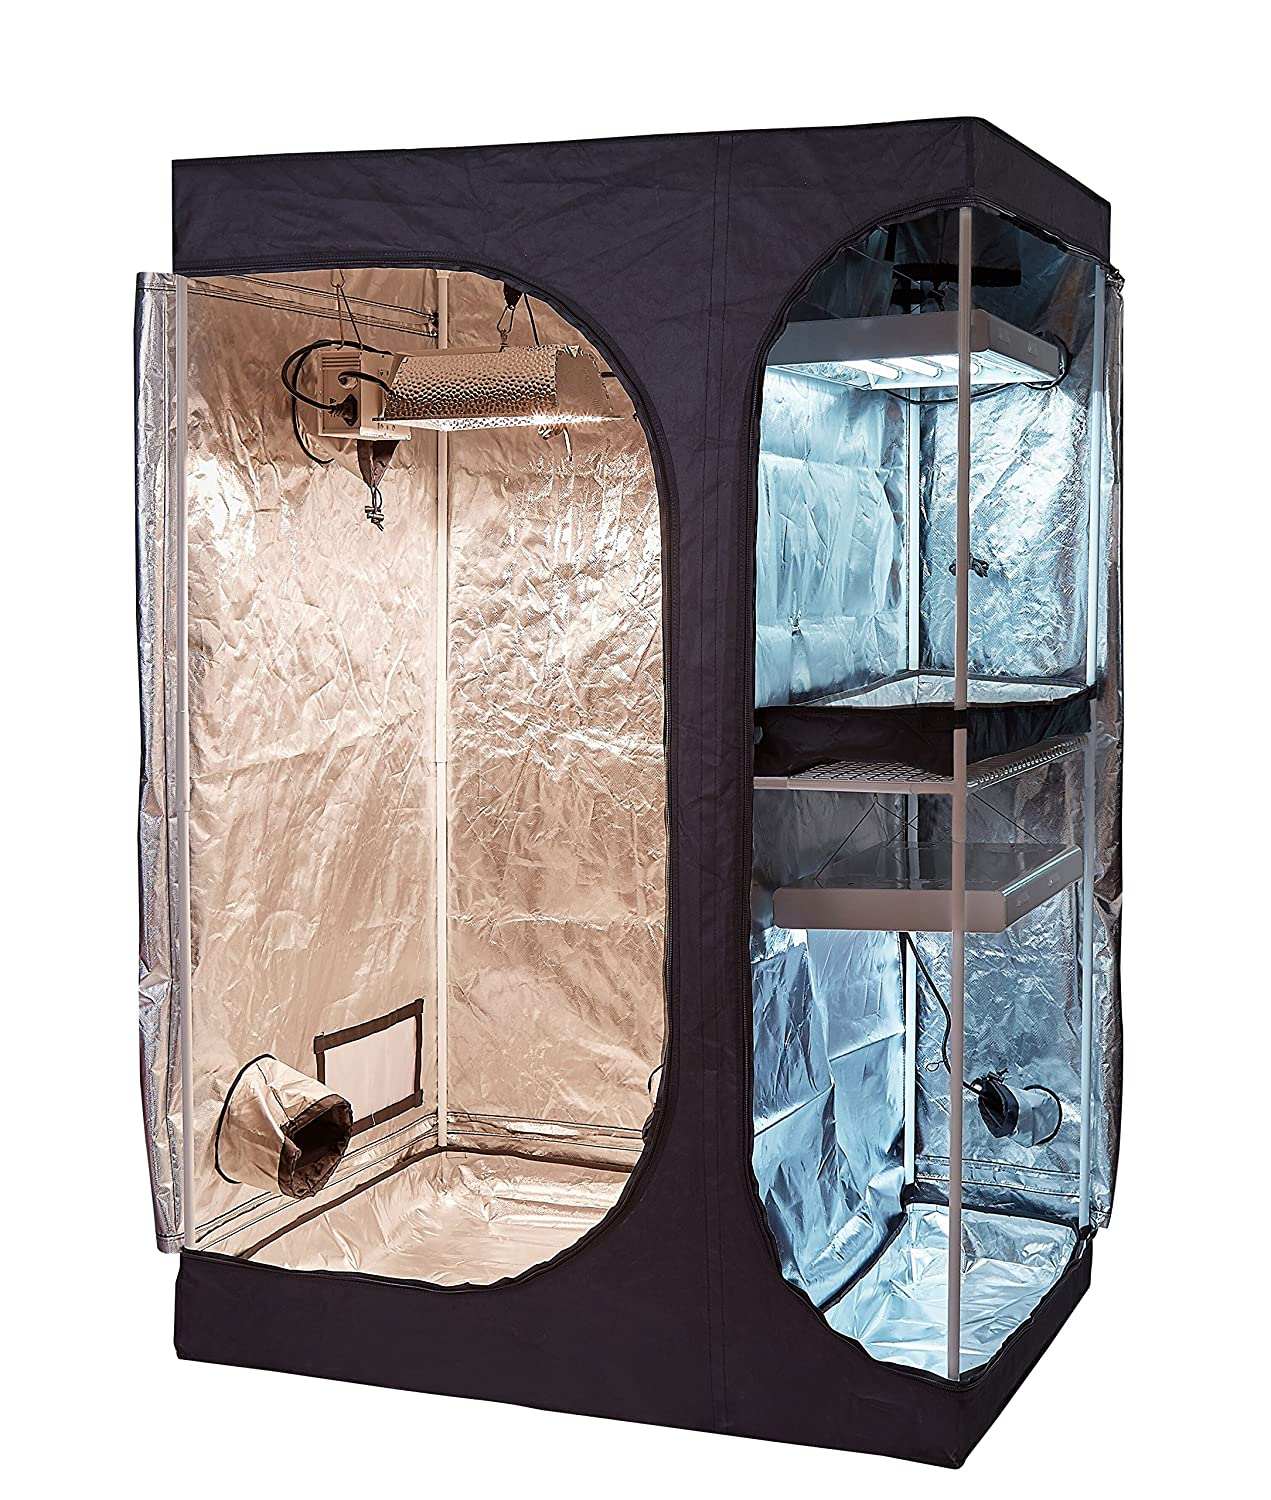 36\ Hongruilite 36 x24 x53  2-in-1 Hydroponic Indoor Grow Tent Room Propagation High Reflective 600D Diamond Mylar Growing Plant (36 x24 x53  (2-in-1) Lodge Propagation Tent)